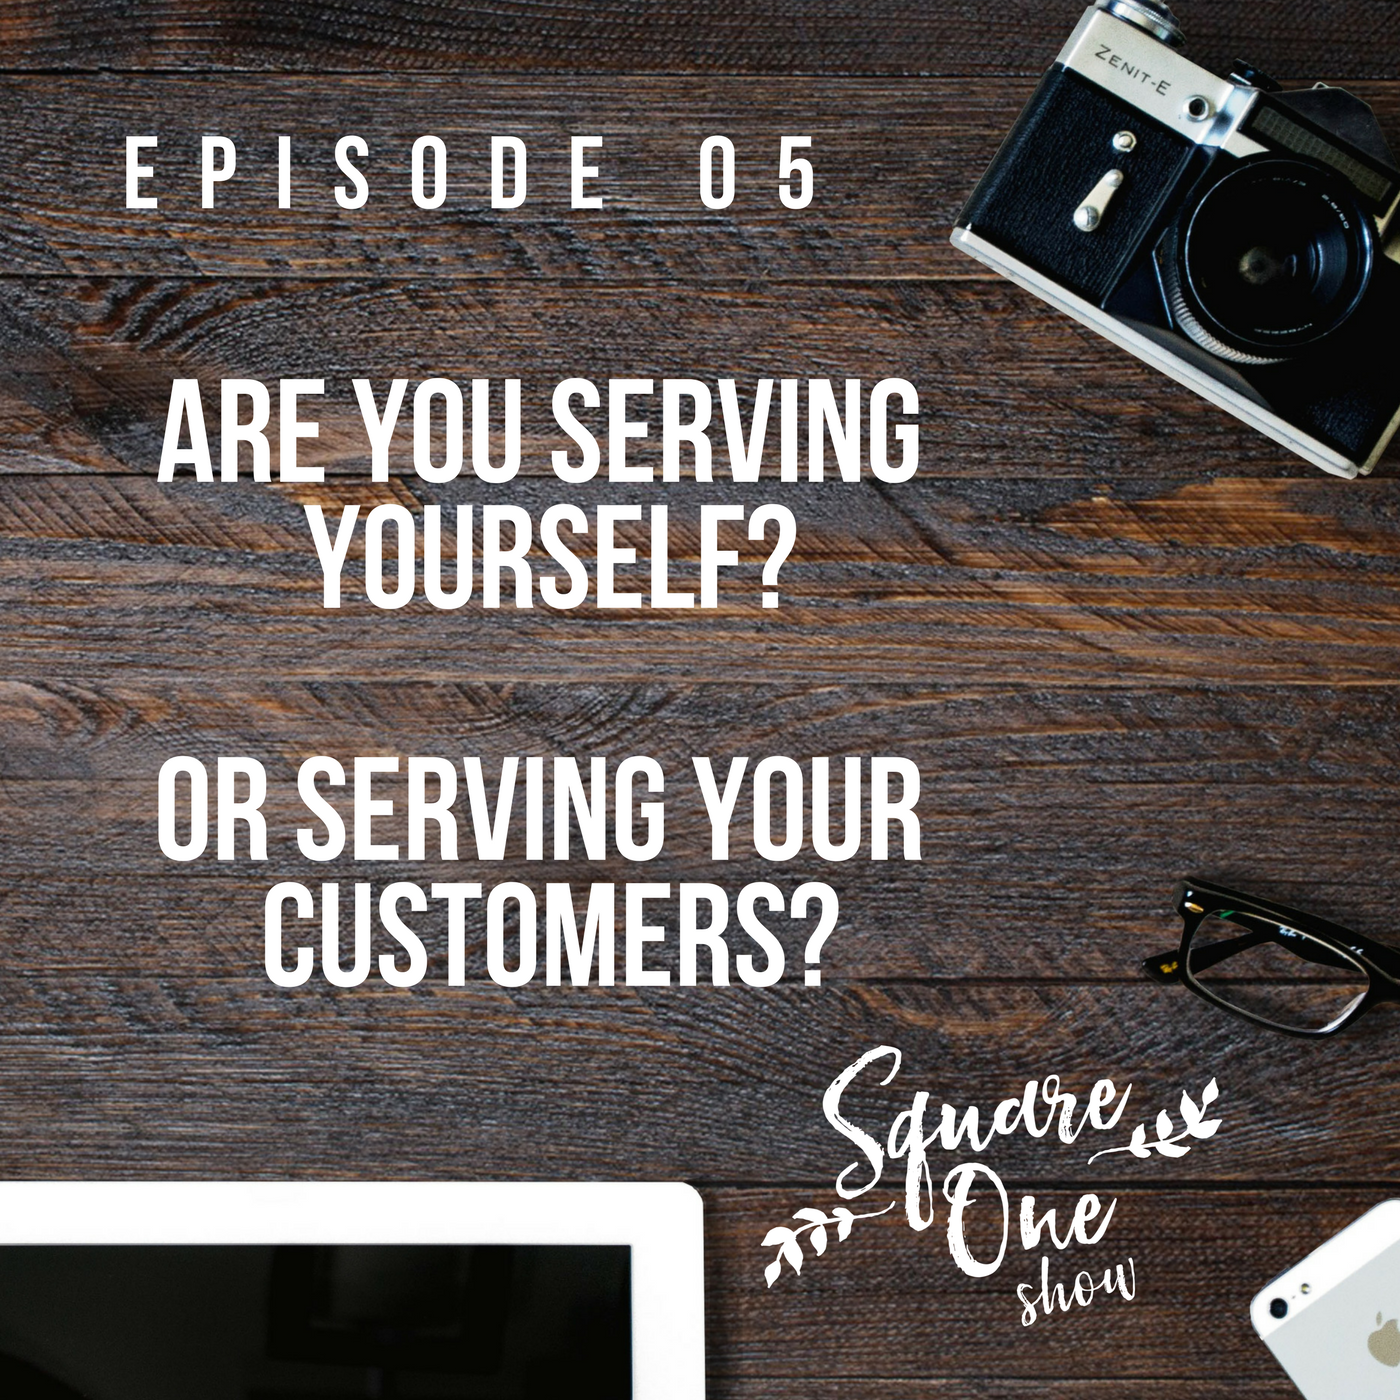 Podcast Episode: Serving Customers